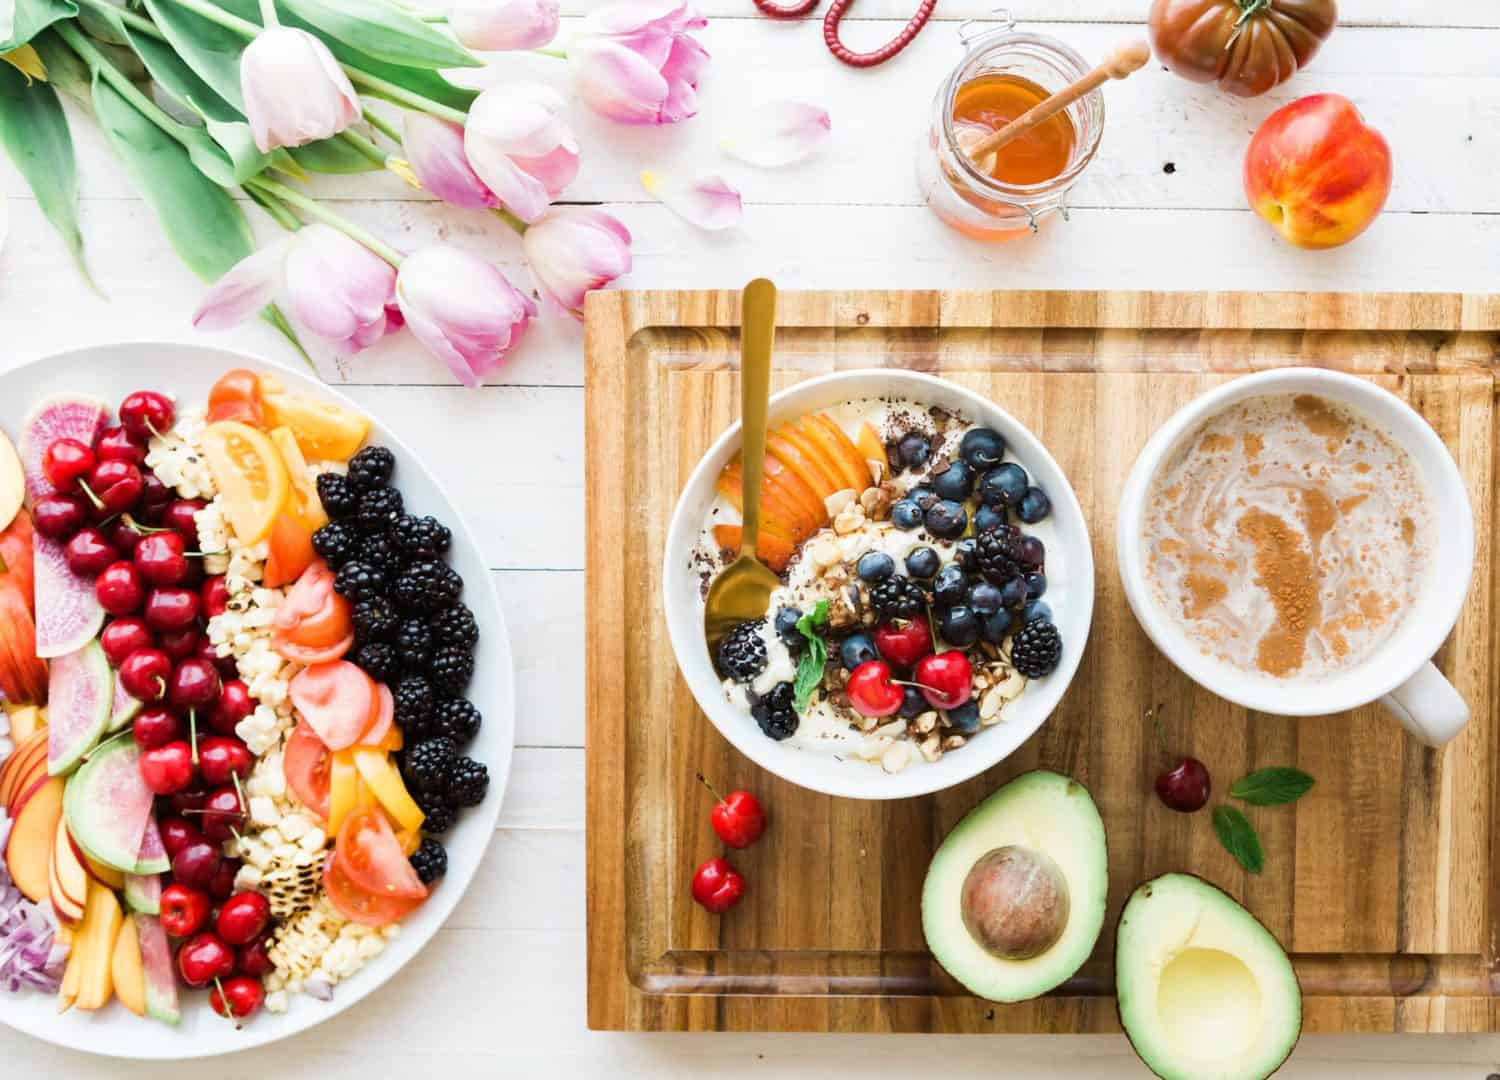 Covid Survivor Food For Mzansi's resident nutritionist Andrea Du Plessis breaks down the benefits of raw foods and why many processed foods are unhealthy.